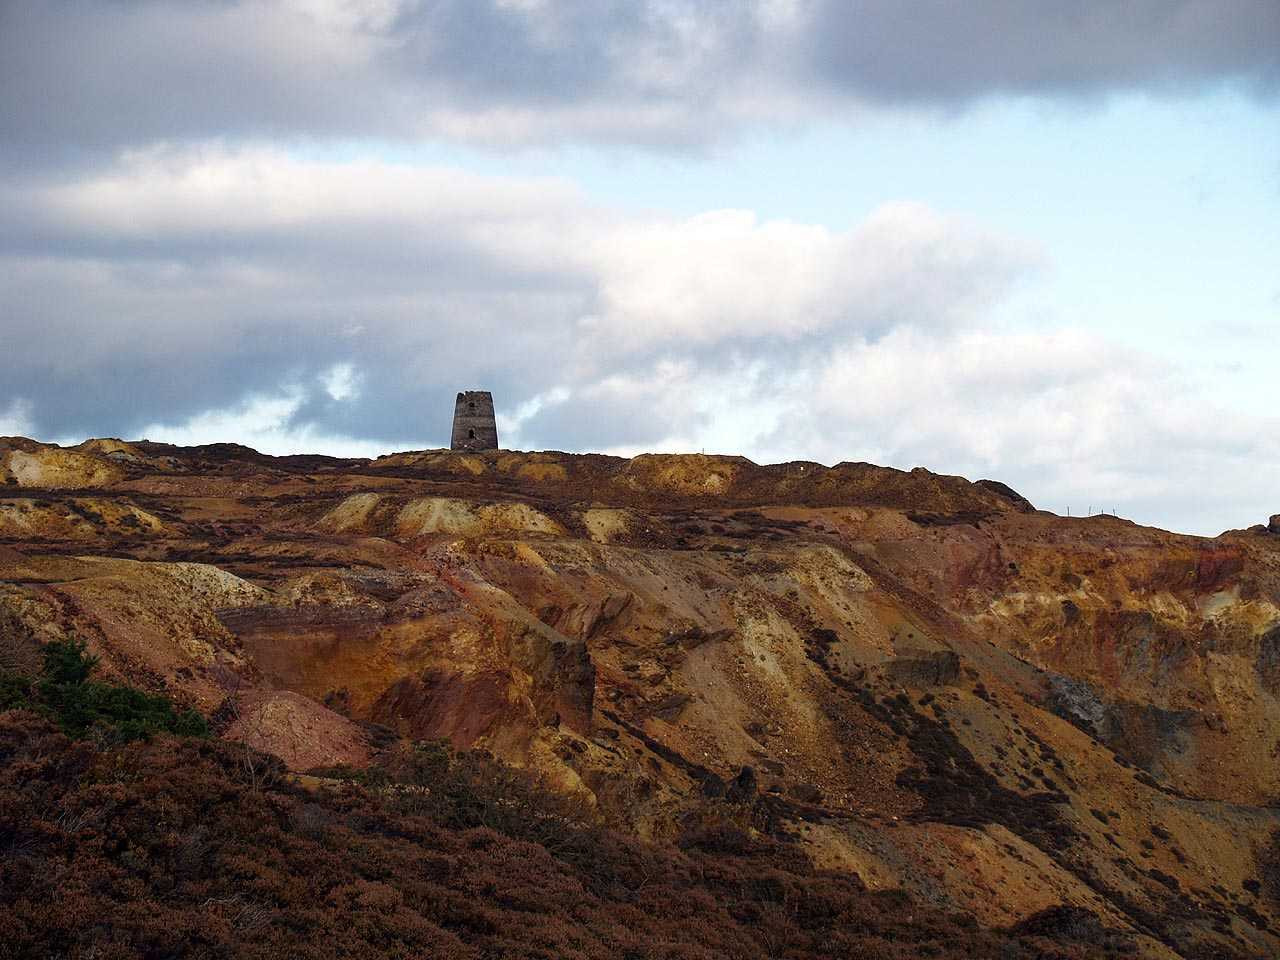 Anglesey, Amlwch, Parys Mountain Windmill at the highest point of the mountain